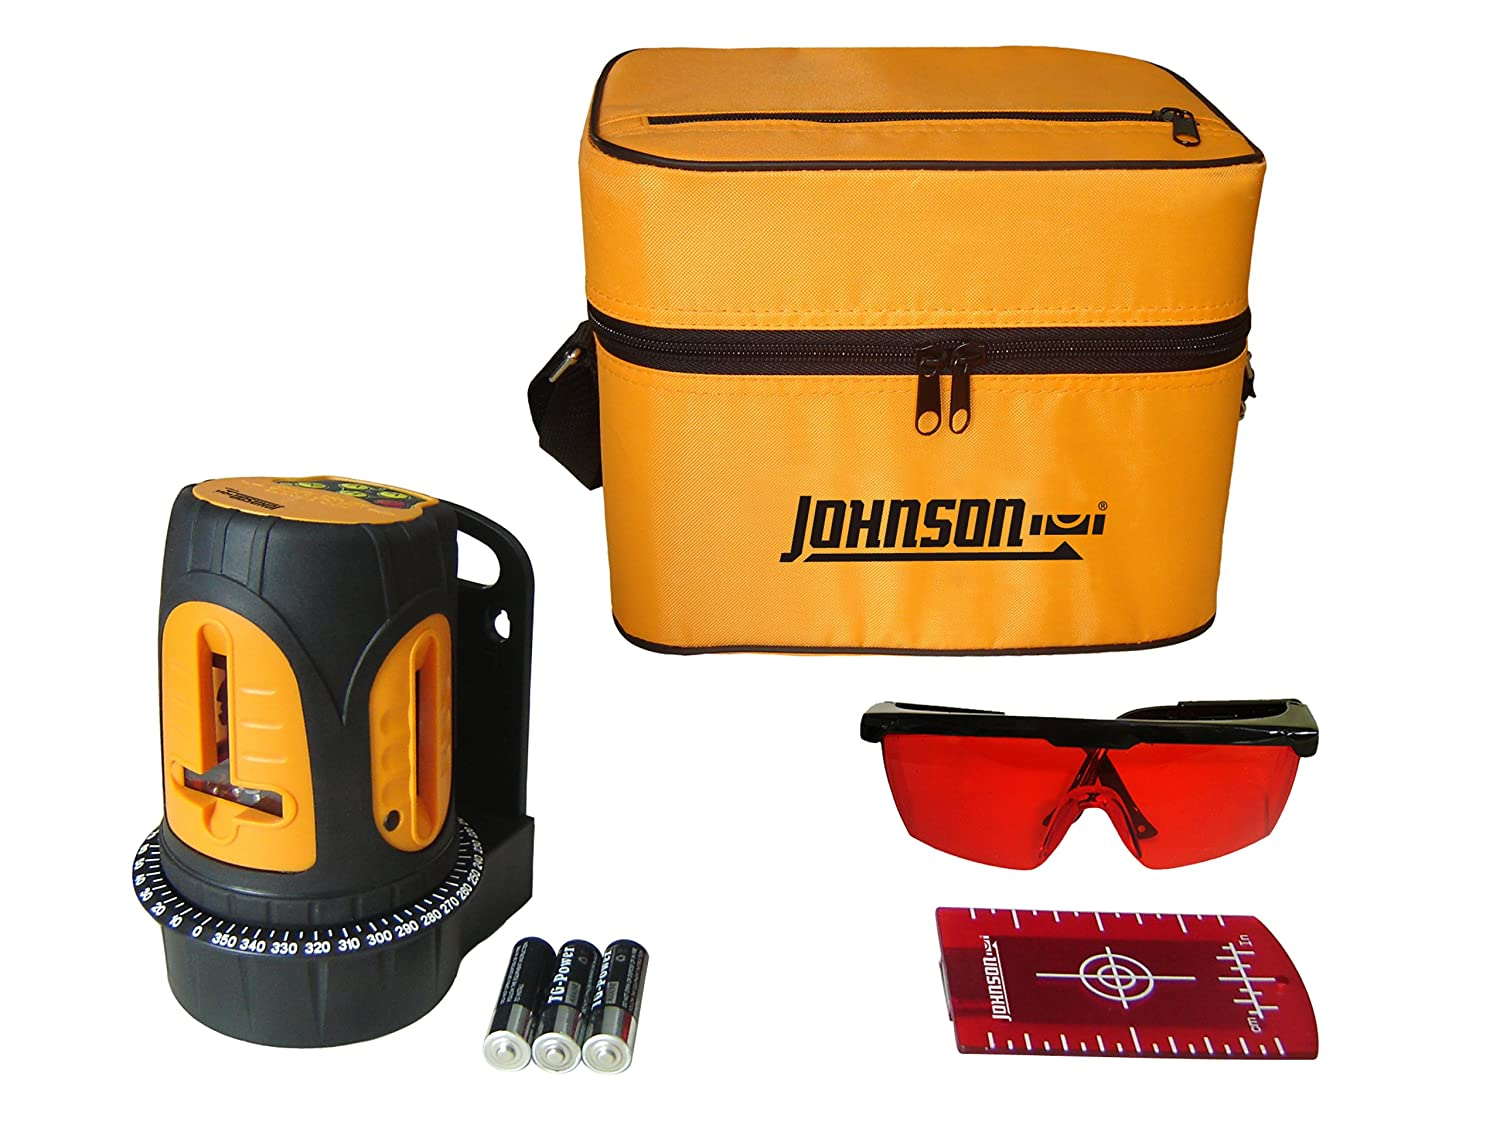 Johnson Level and Tool 40 6602 Self Leveling Cross Line Laser Level with 3 Vertical Lines